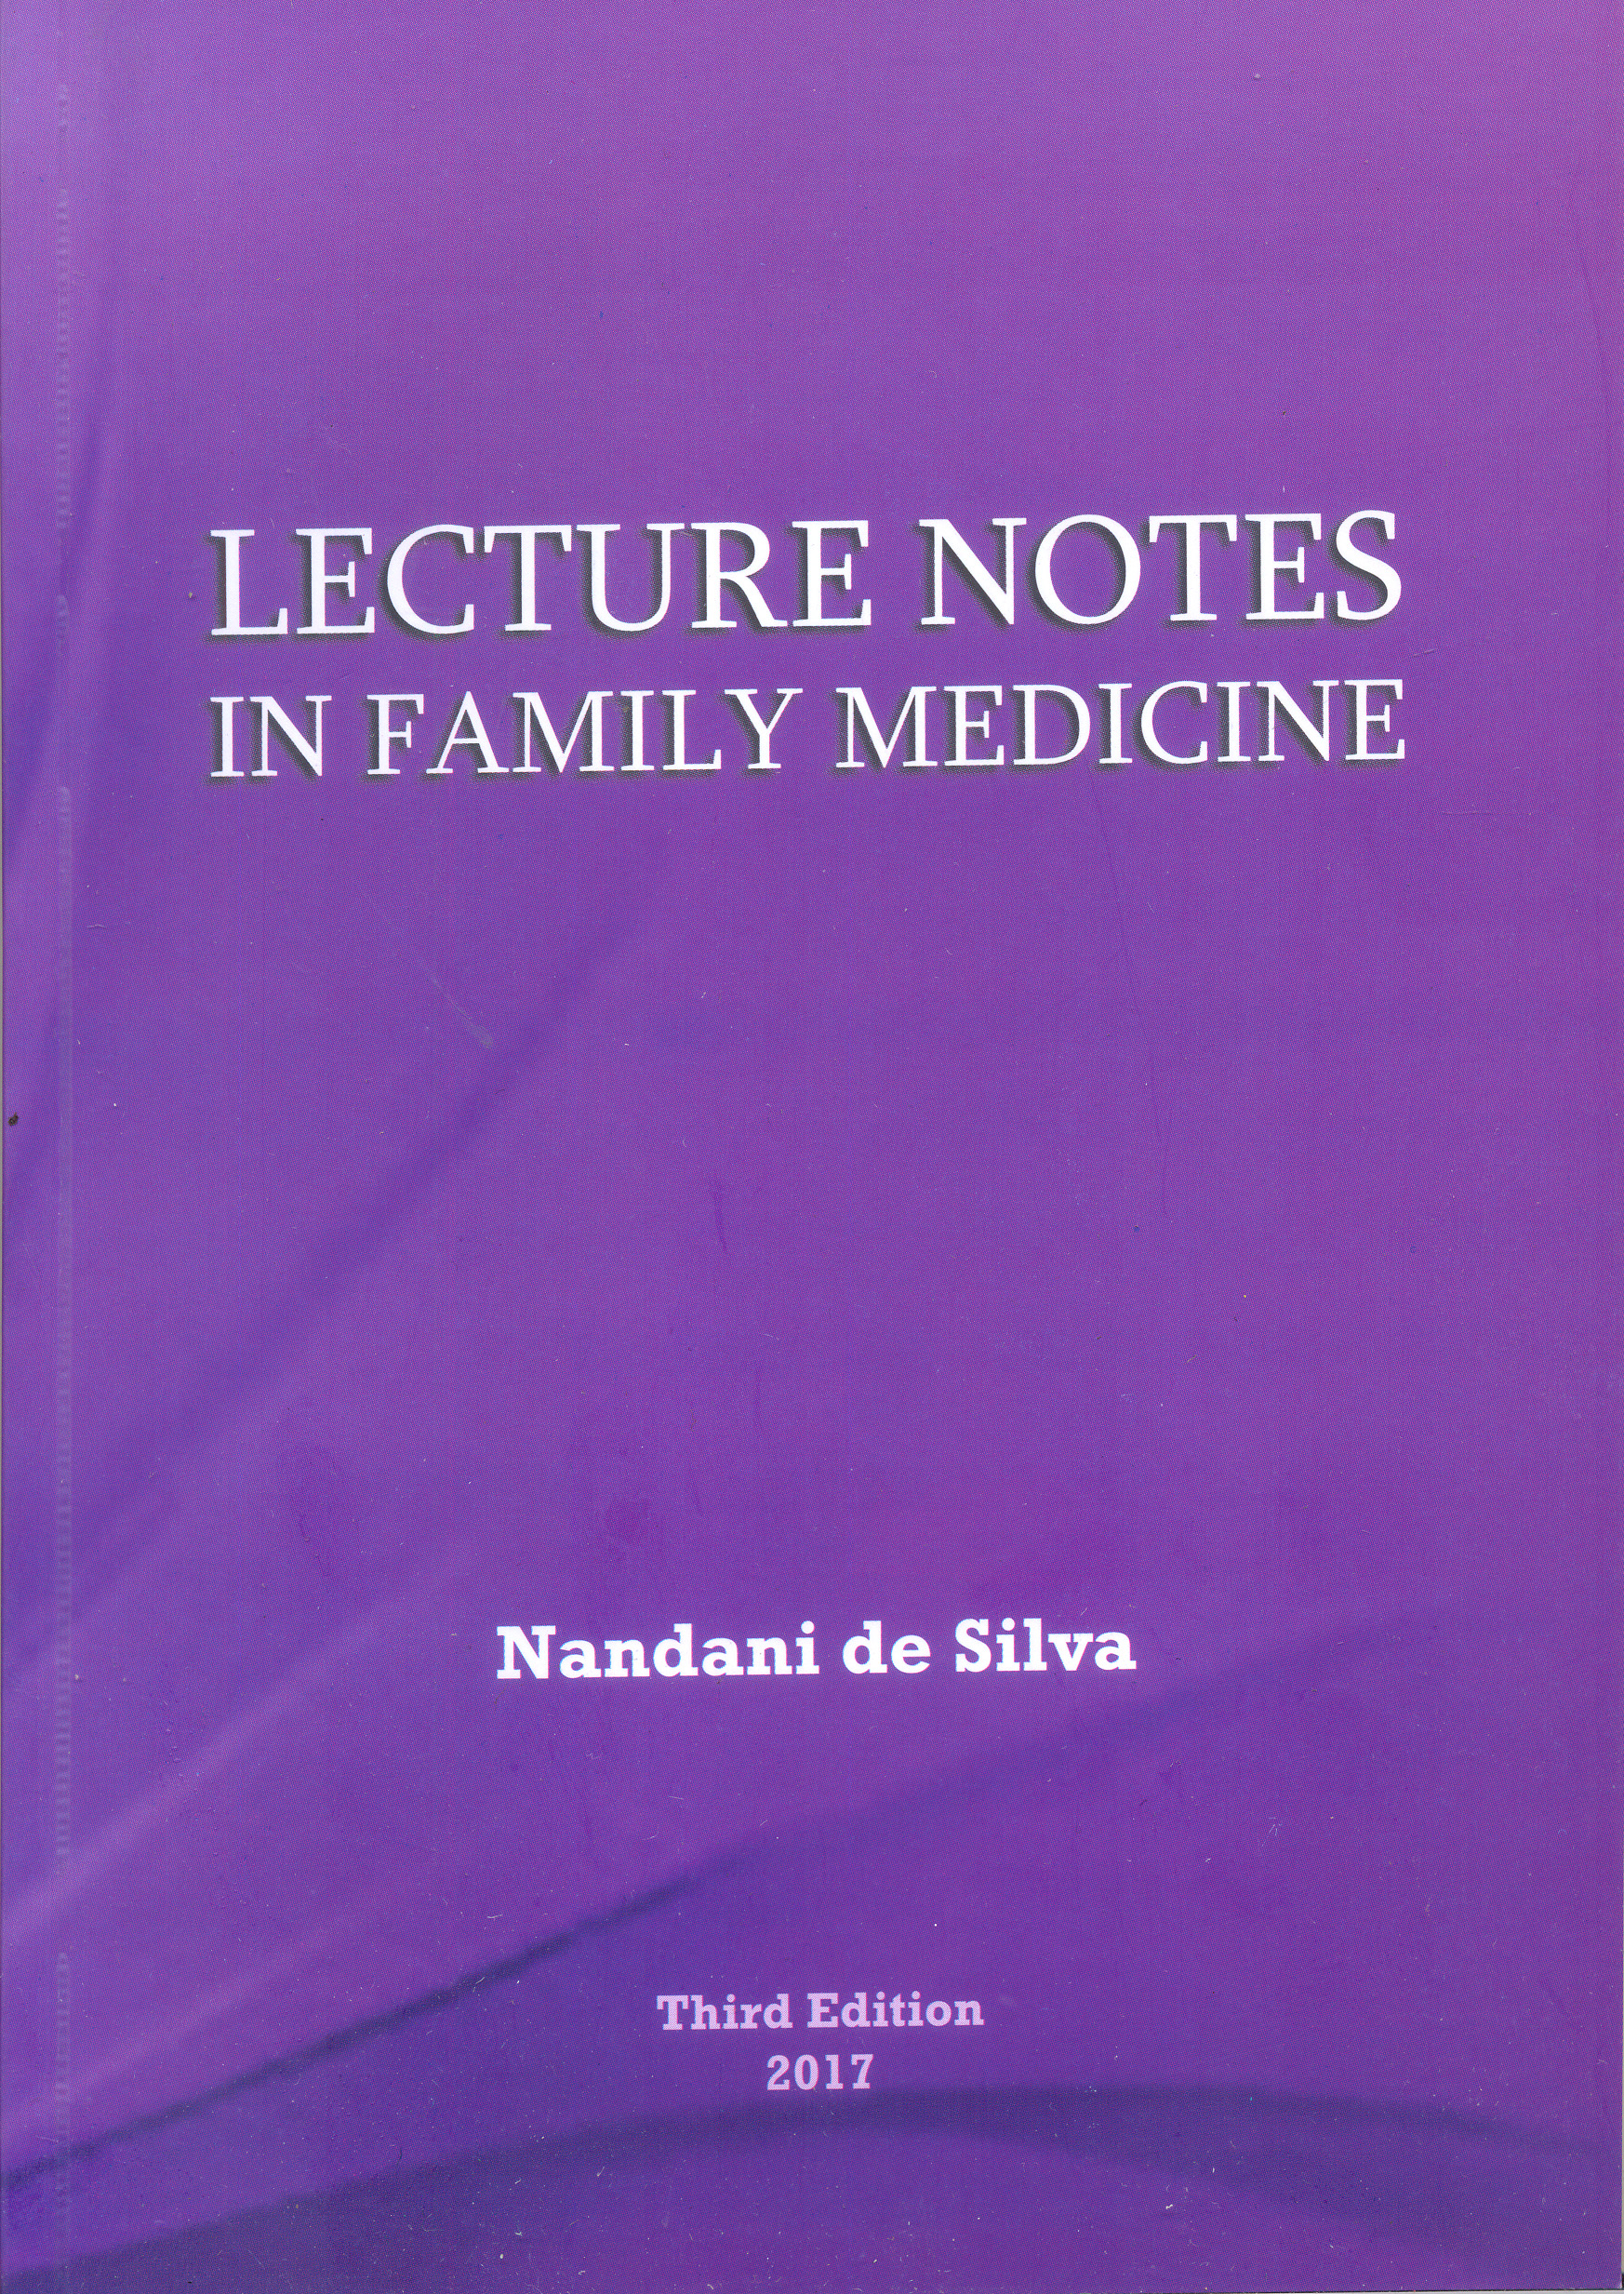 Lecture Notes In Family Medicine ( Third Edition 2017 )